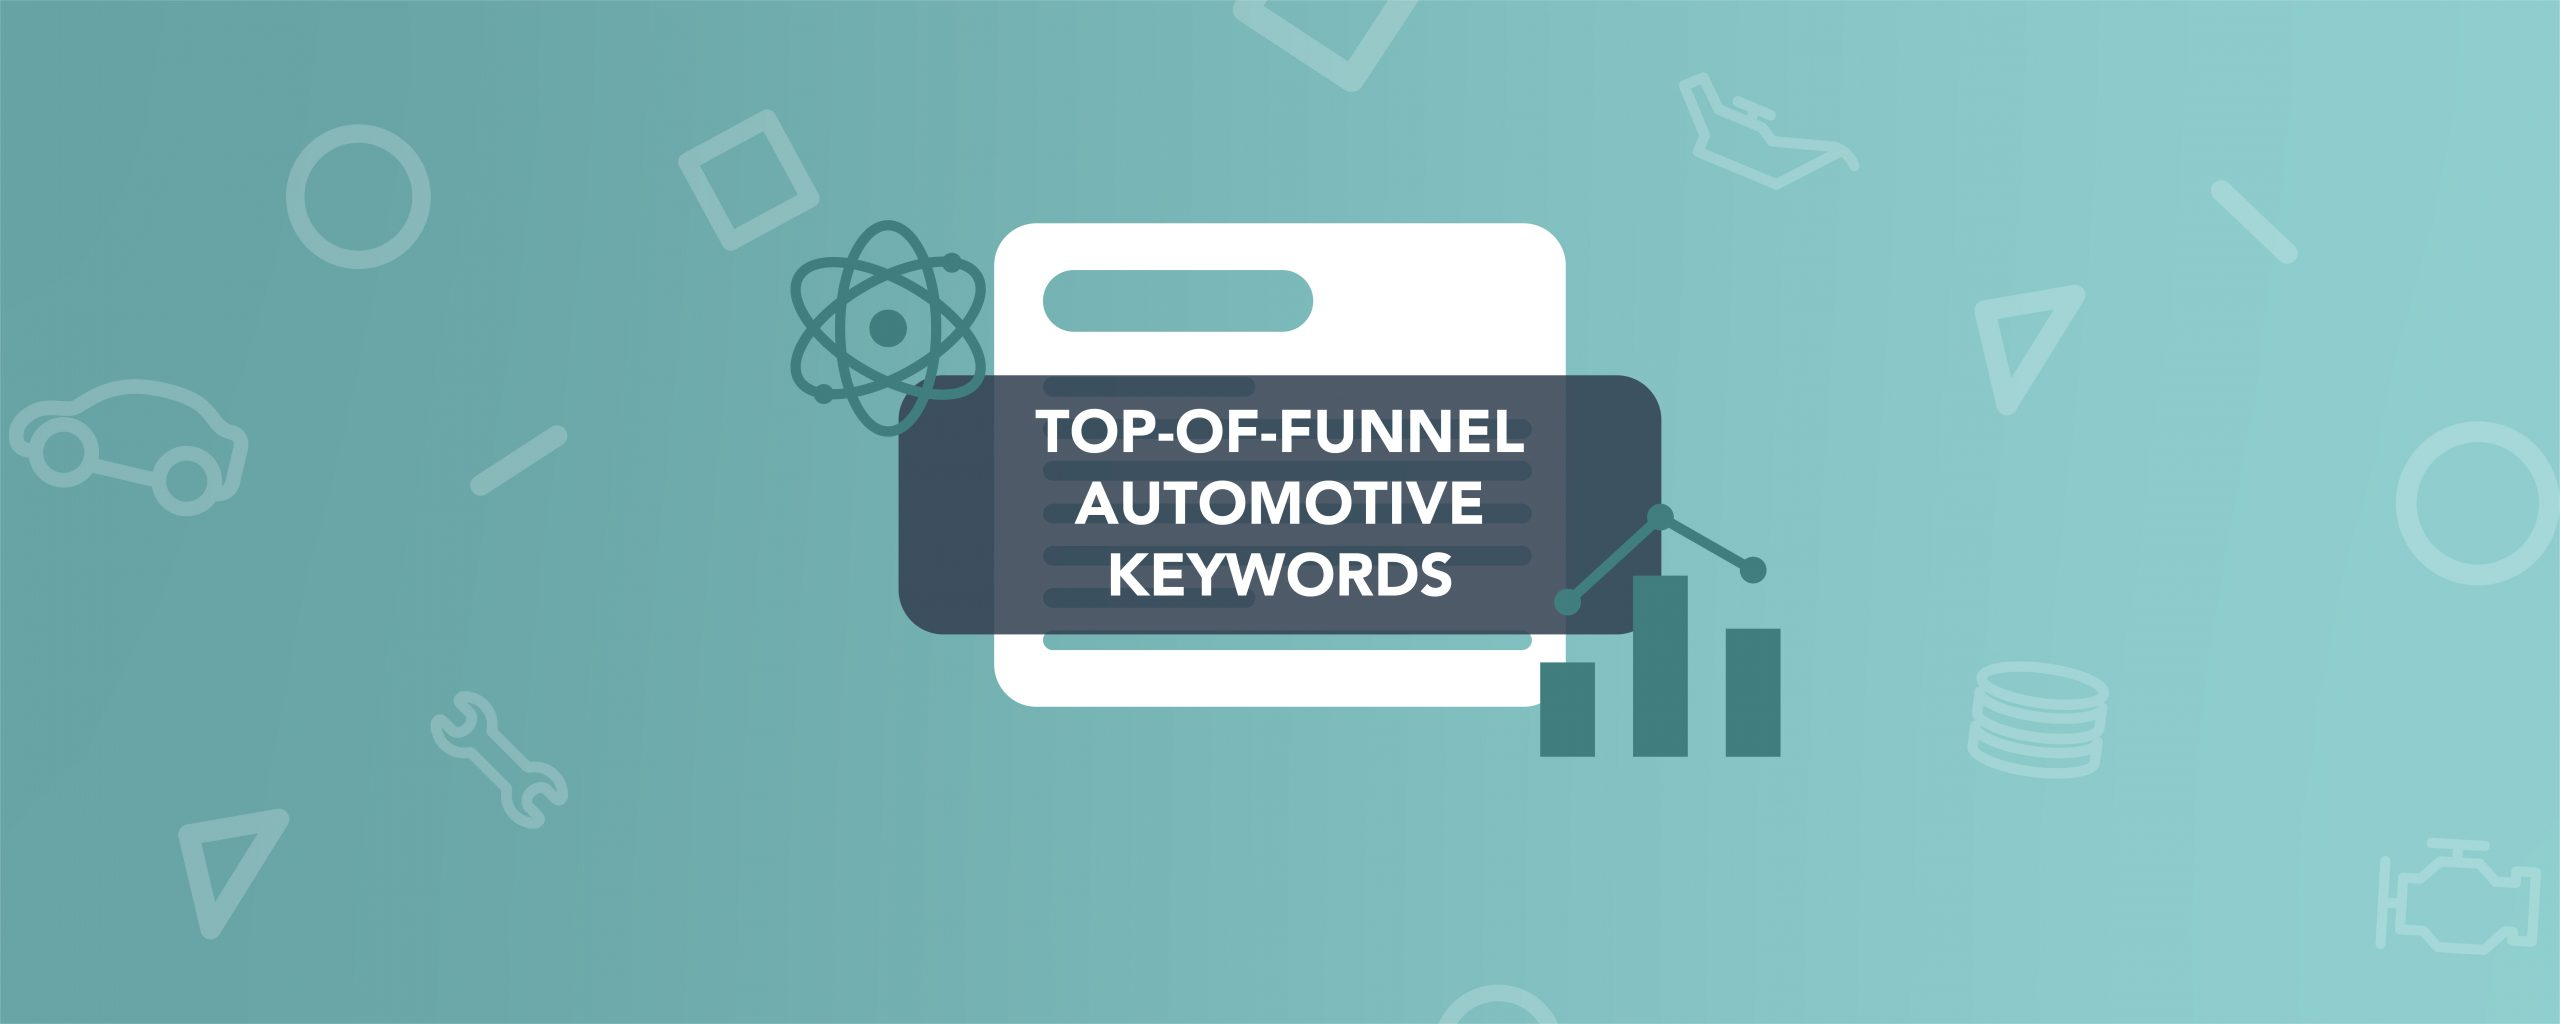 Top-of-Funnel Automotive Keywords banner